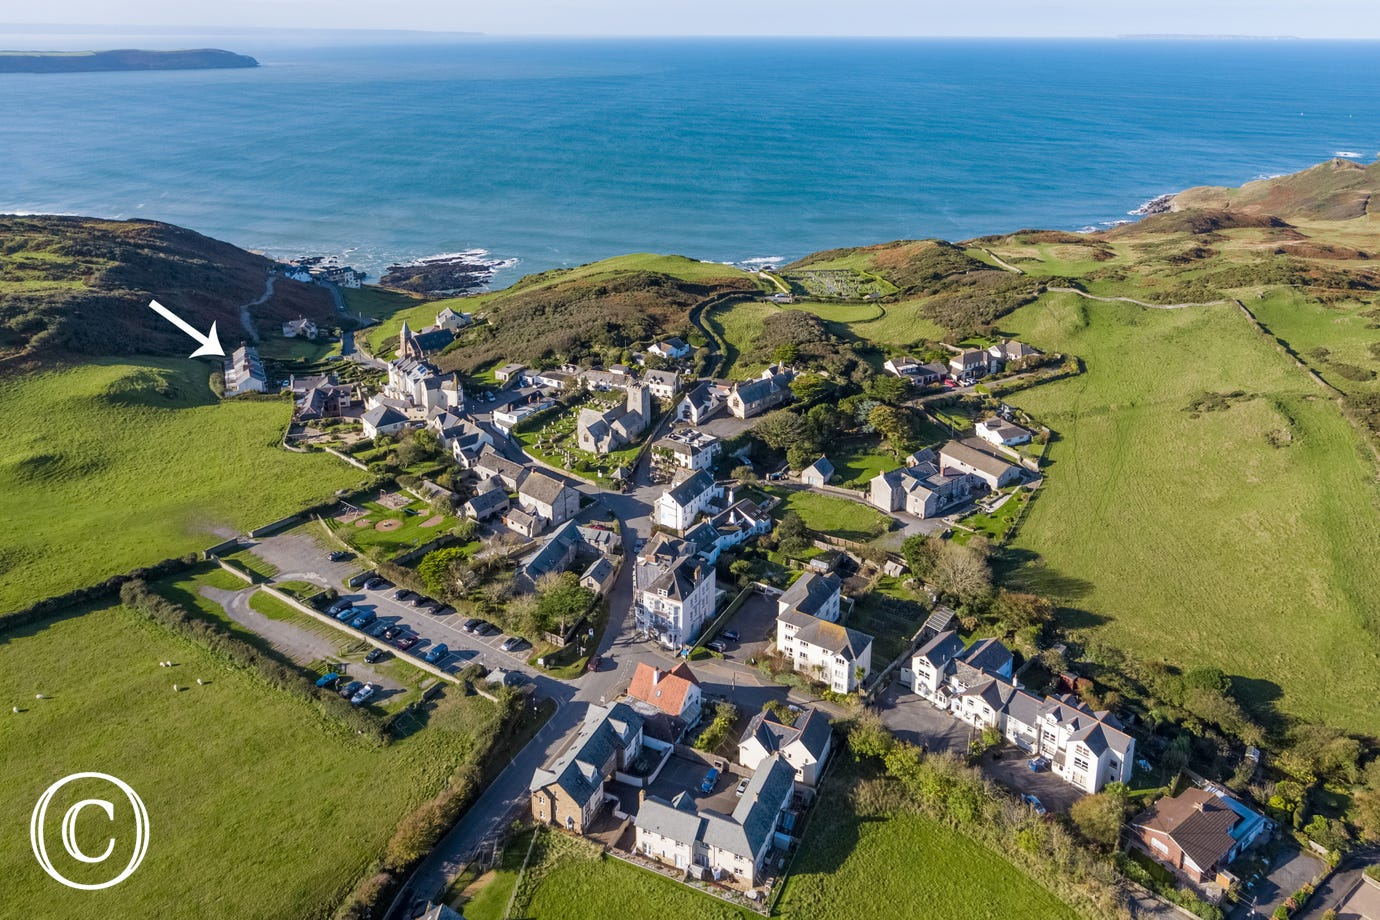 An aerial view of Mortehoe and where Seaview Cottage is located